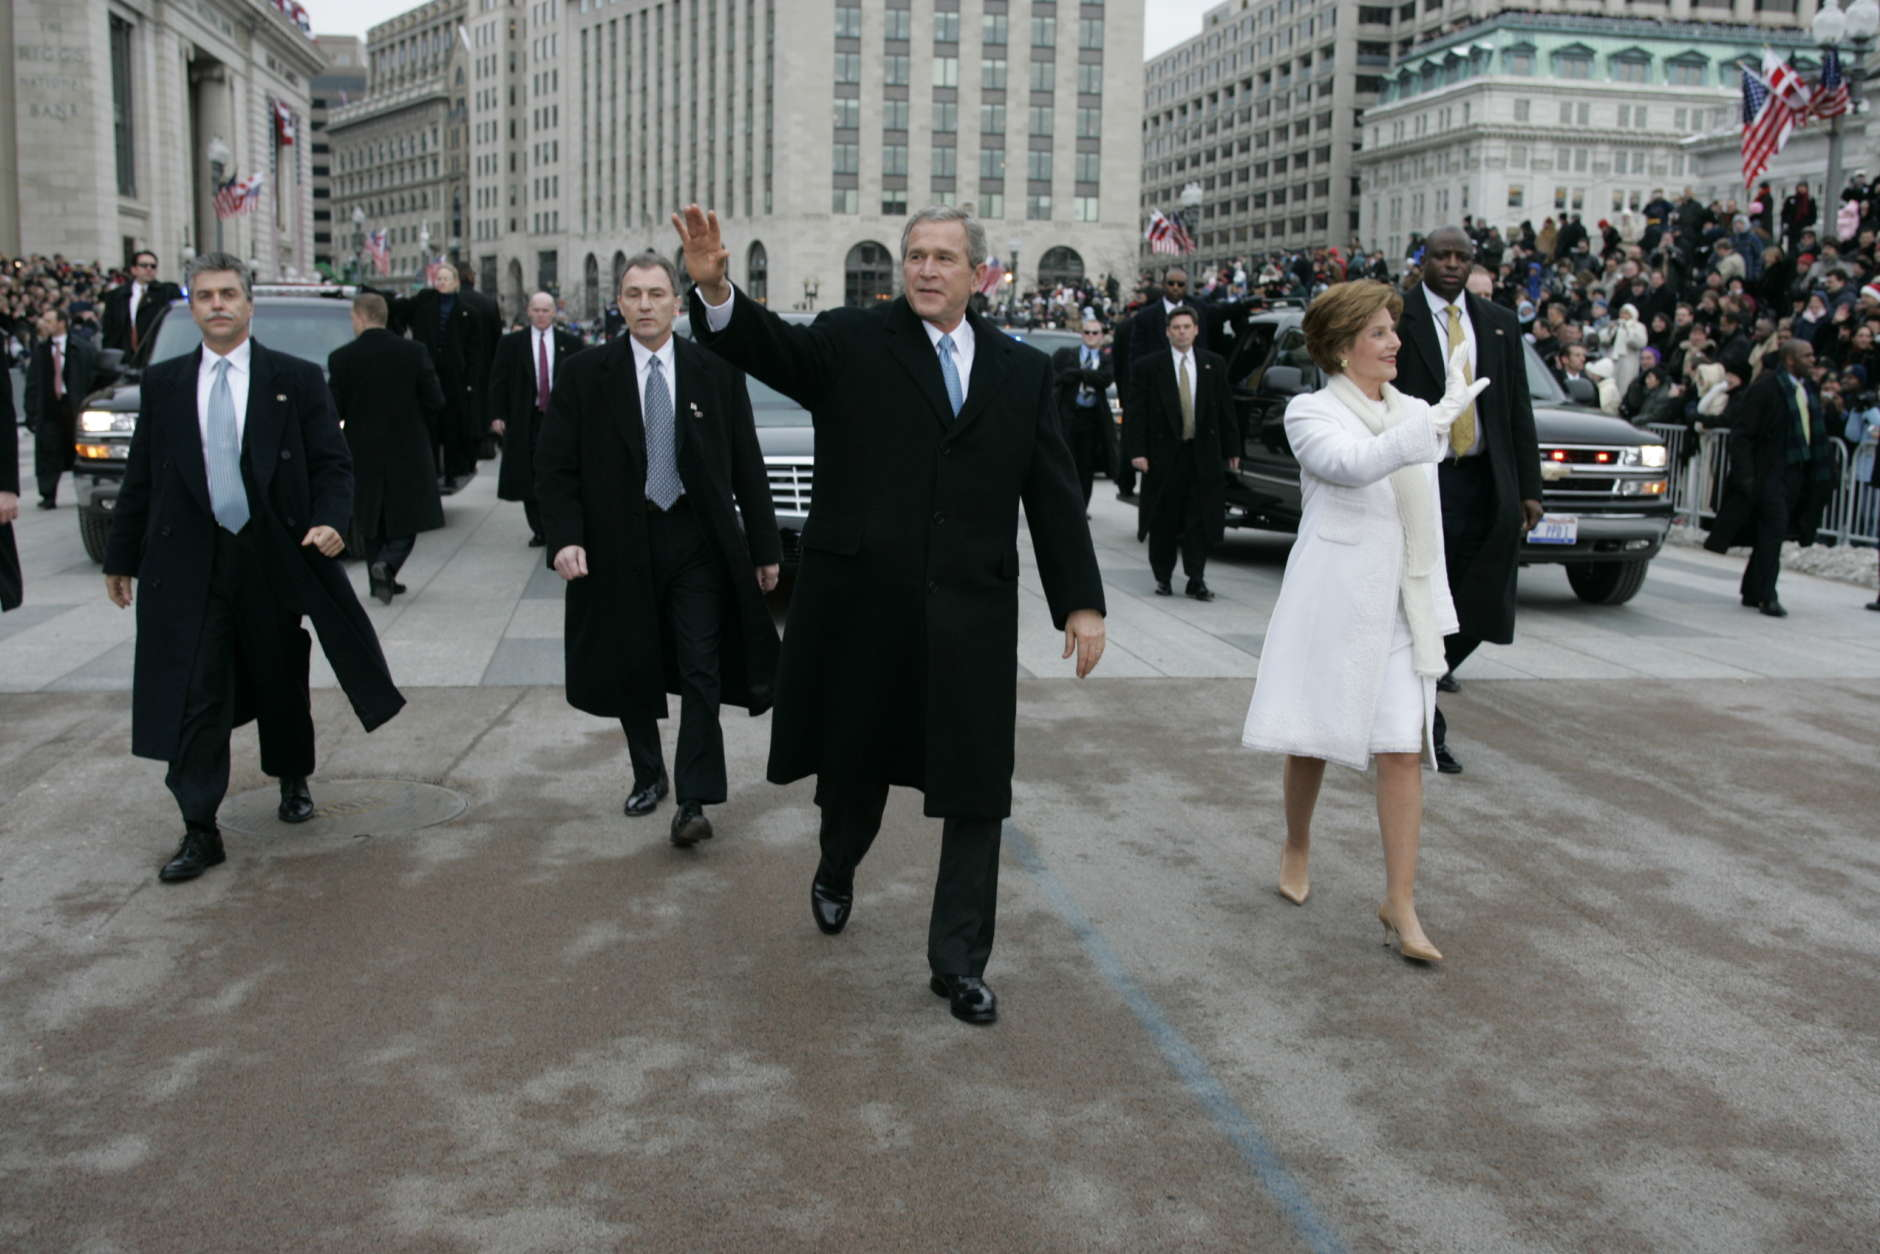 President Bush and first lady Laura Bush walk during the inauguration parade in front of the White House. Thursday, Jan. 20, 2005, in Washington. (AP Photo/Doug Mills/Pool)